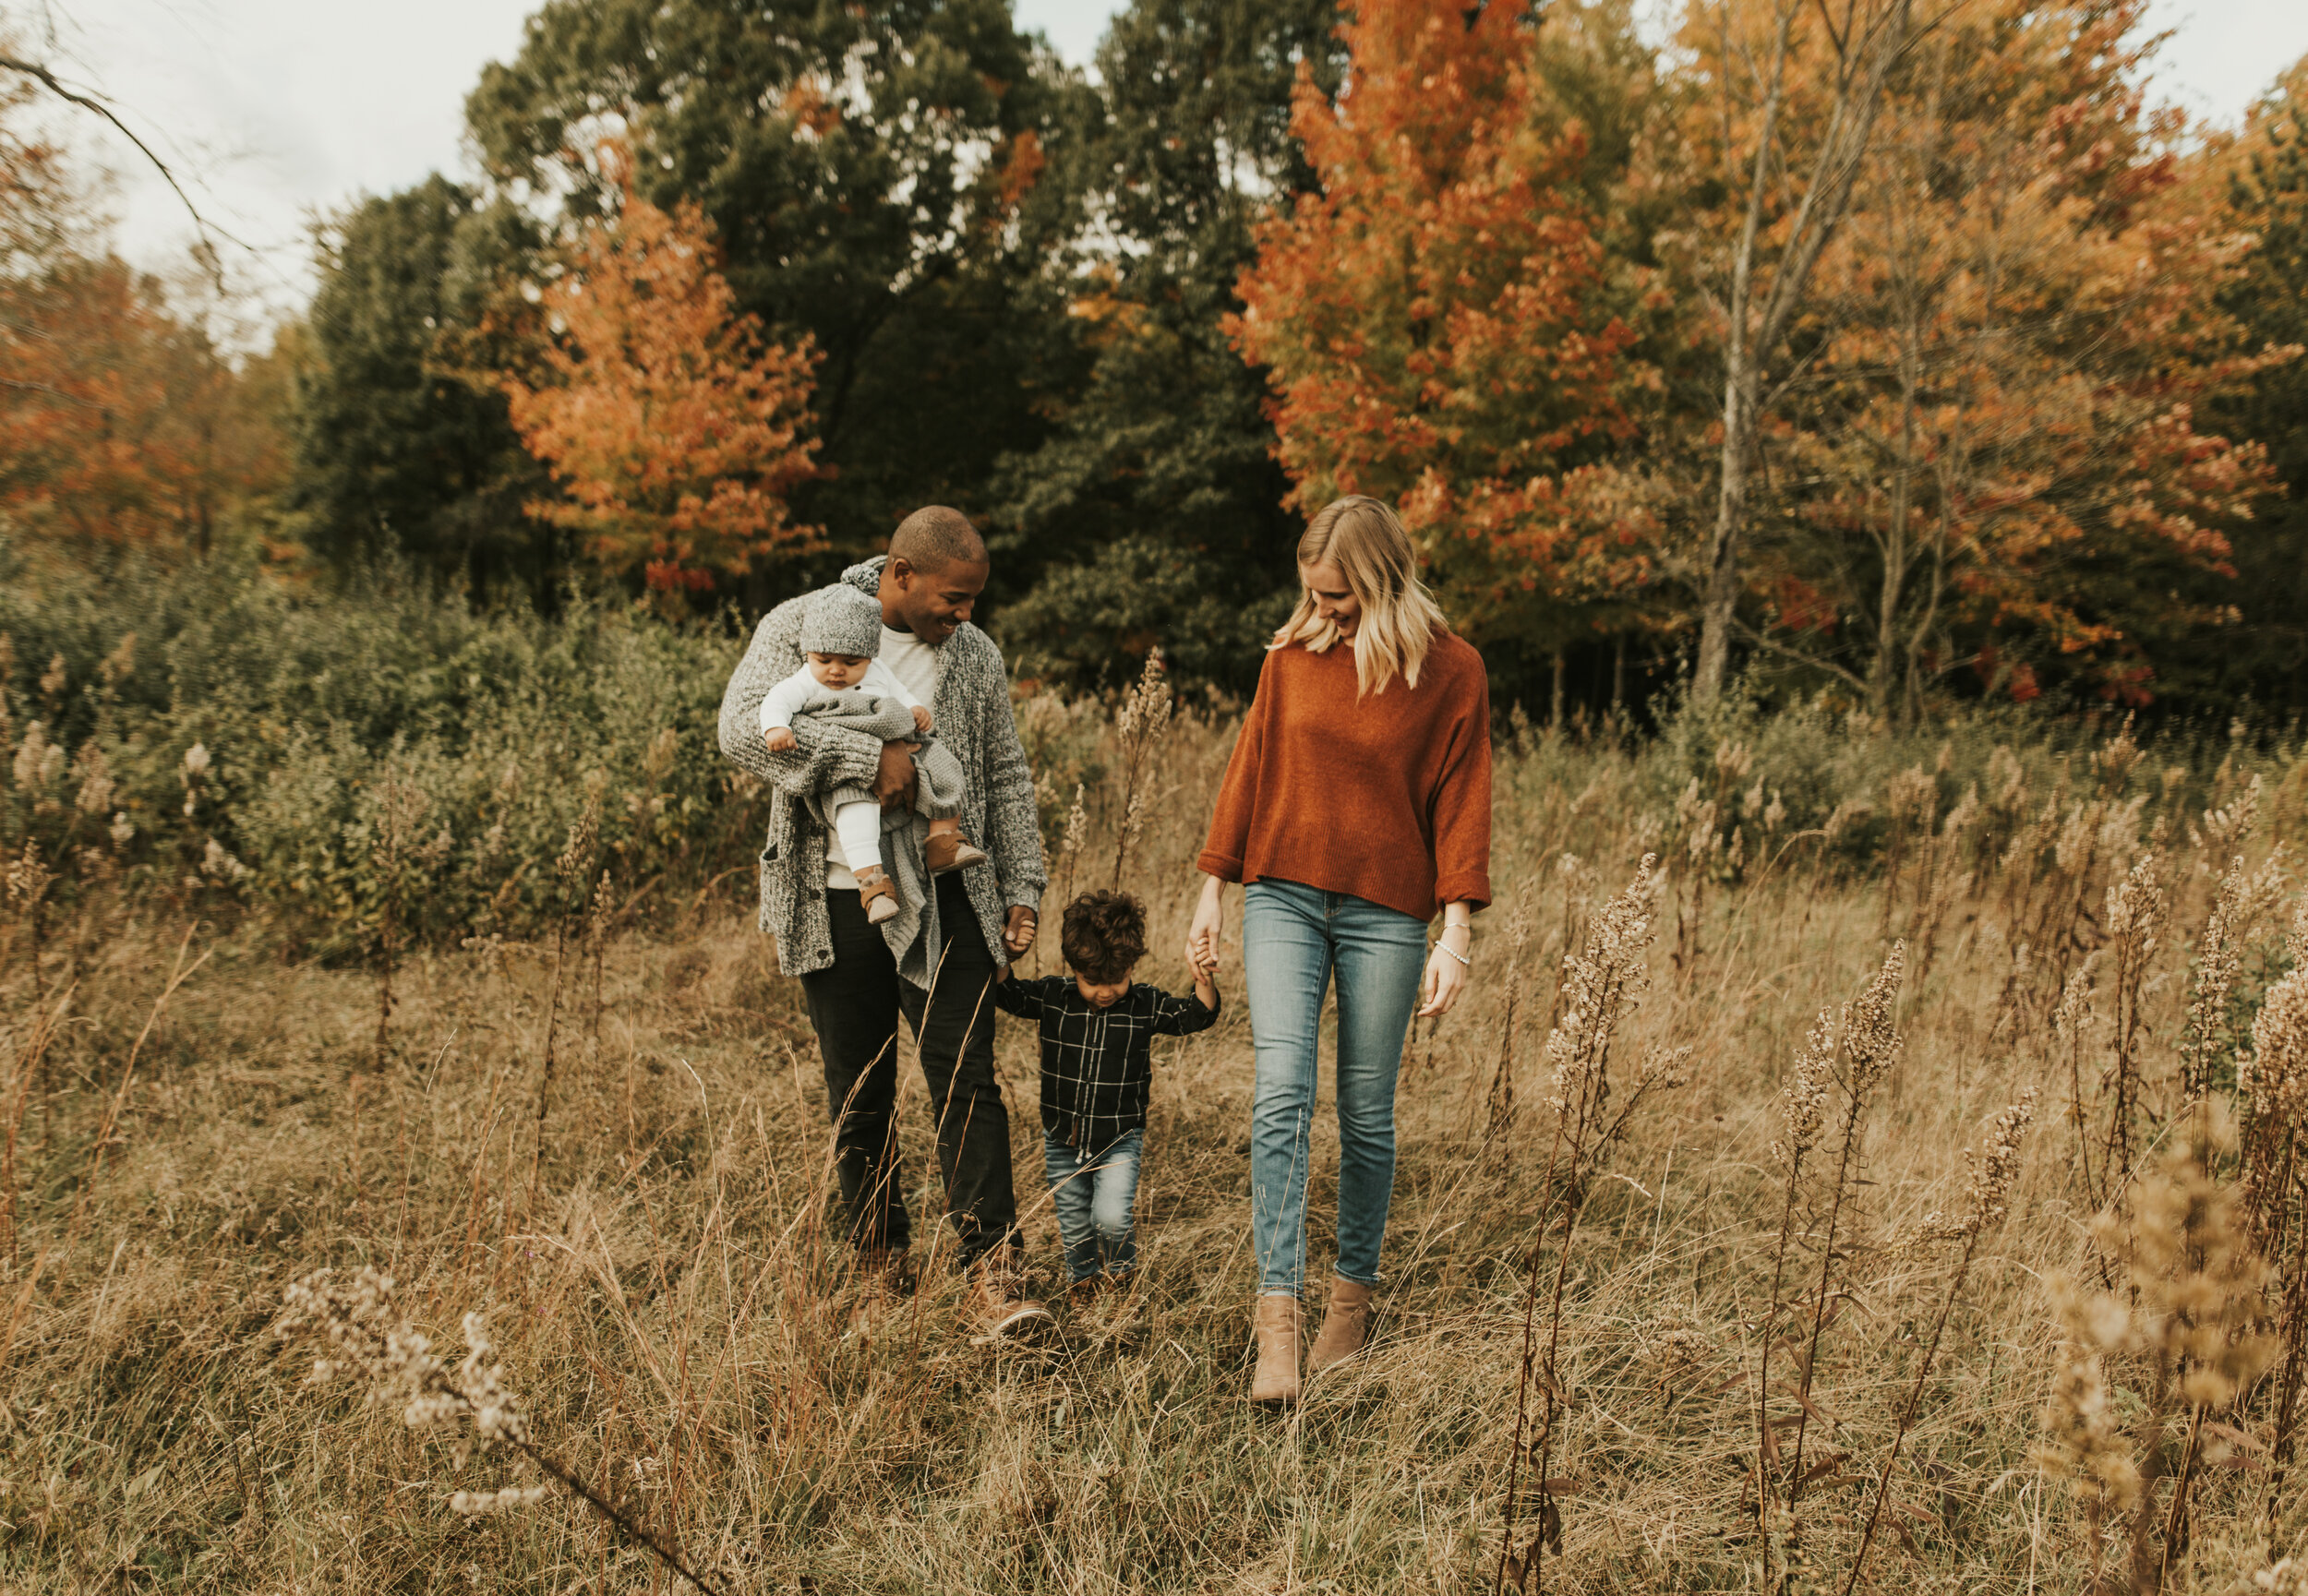 JacksonFamily_Autumn2019_22.jpg